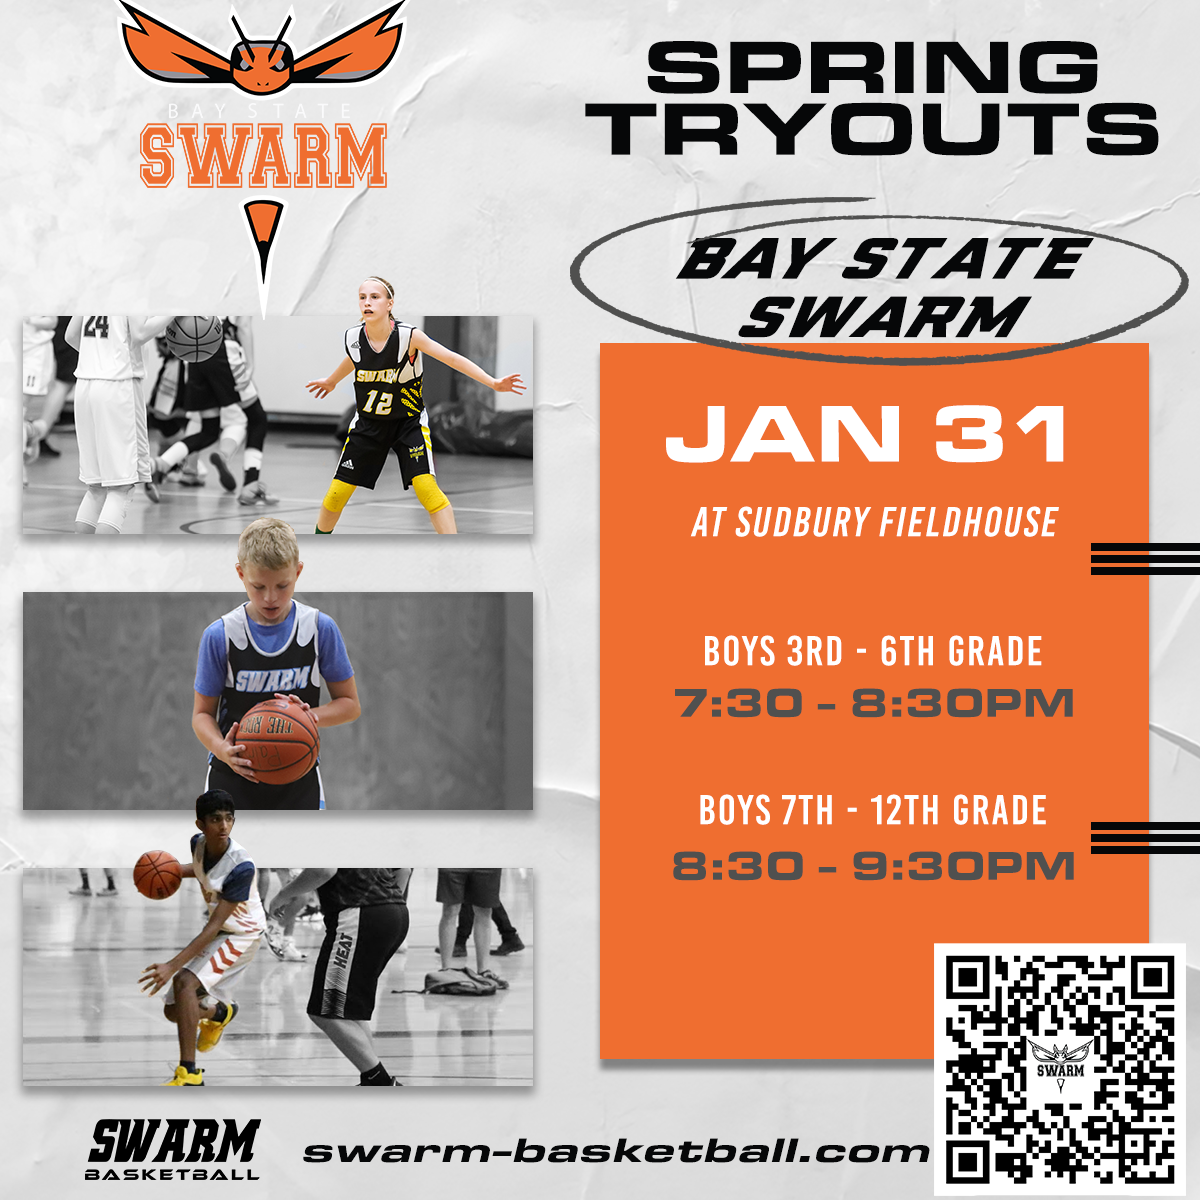 Spring 2021 tryouts Bay State